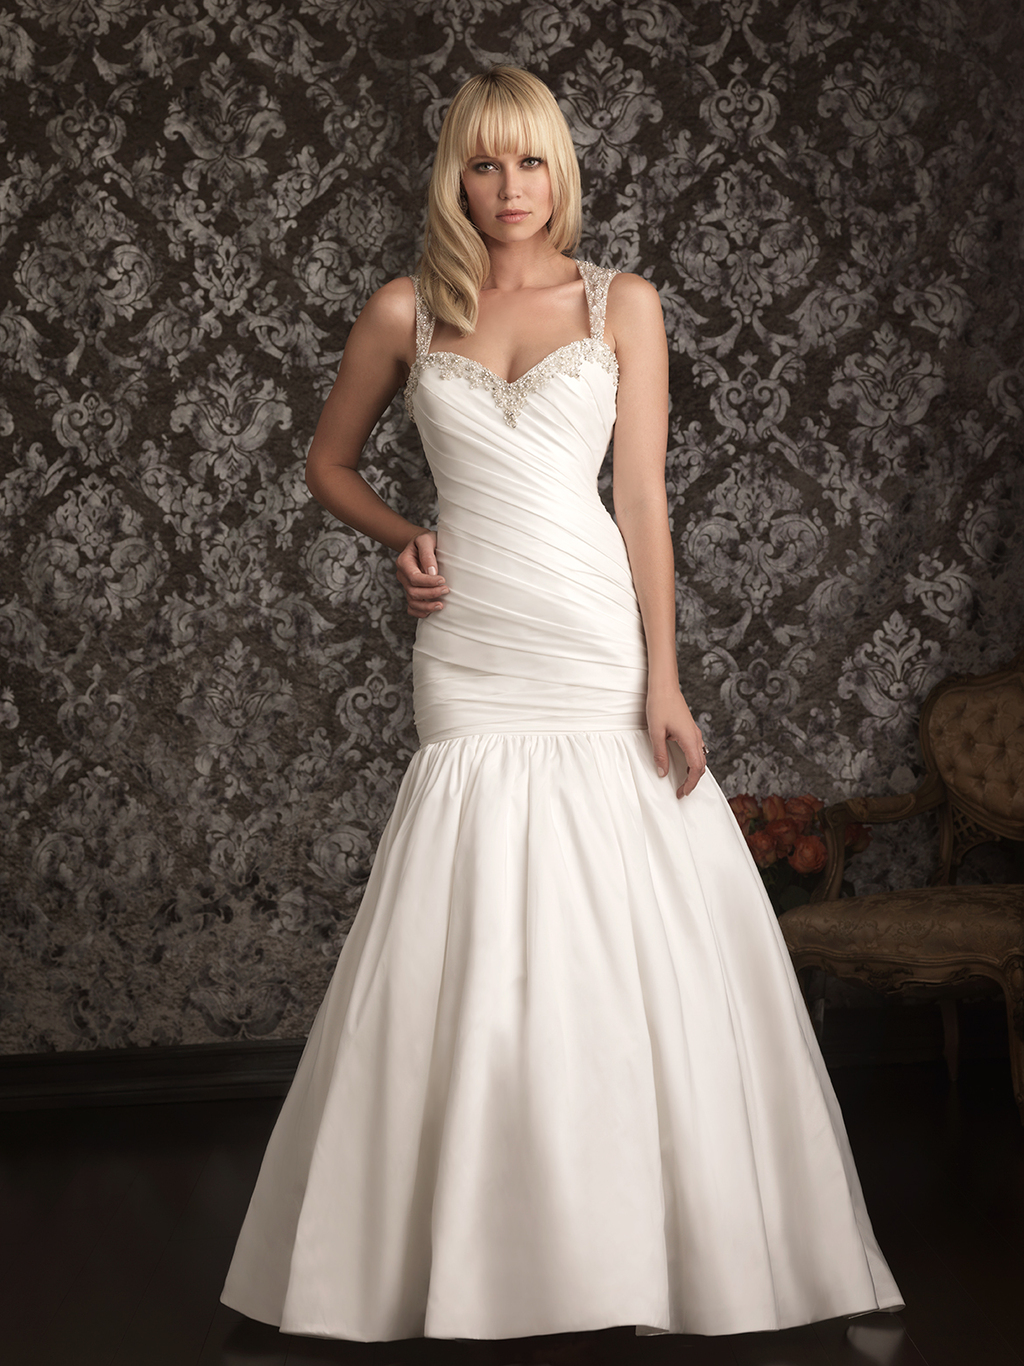 Allure-bridals-wedding-dress-bridal-gown-allure-collection-sweetheart-9020f.full